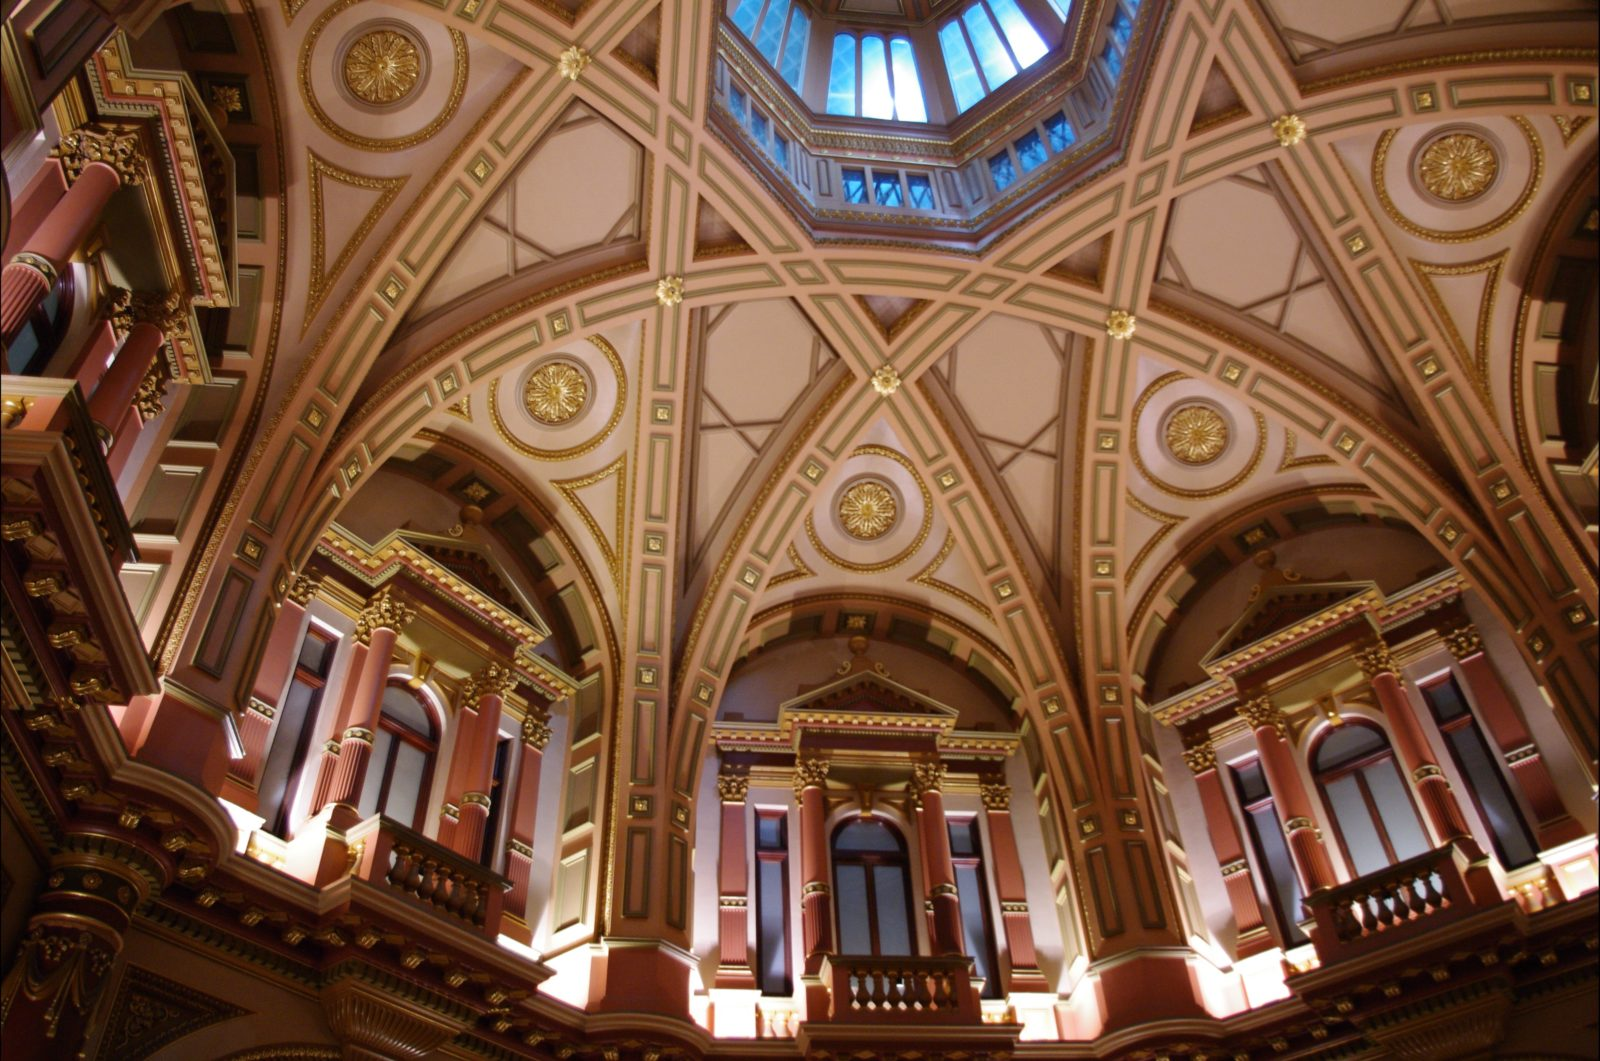 Visit the Dome on Collins Street on the West End walk